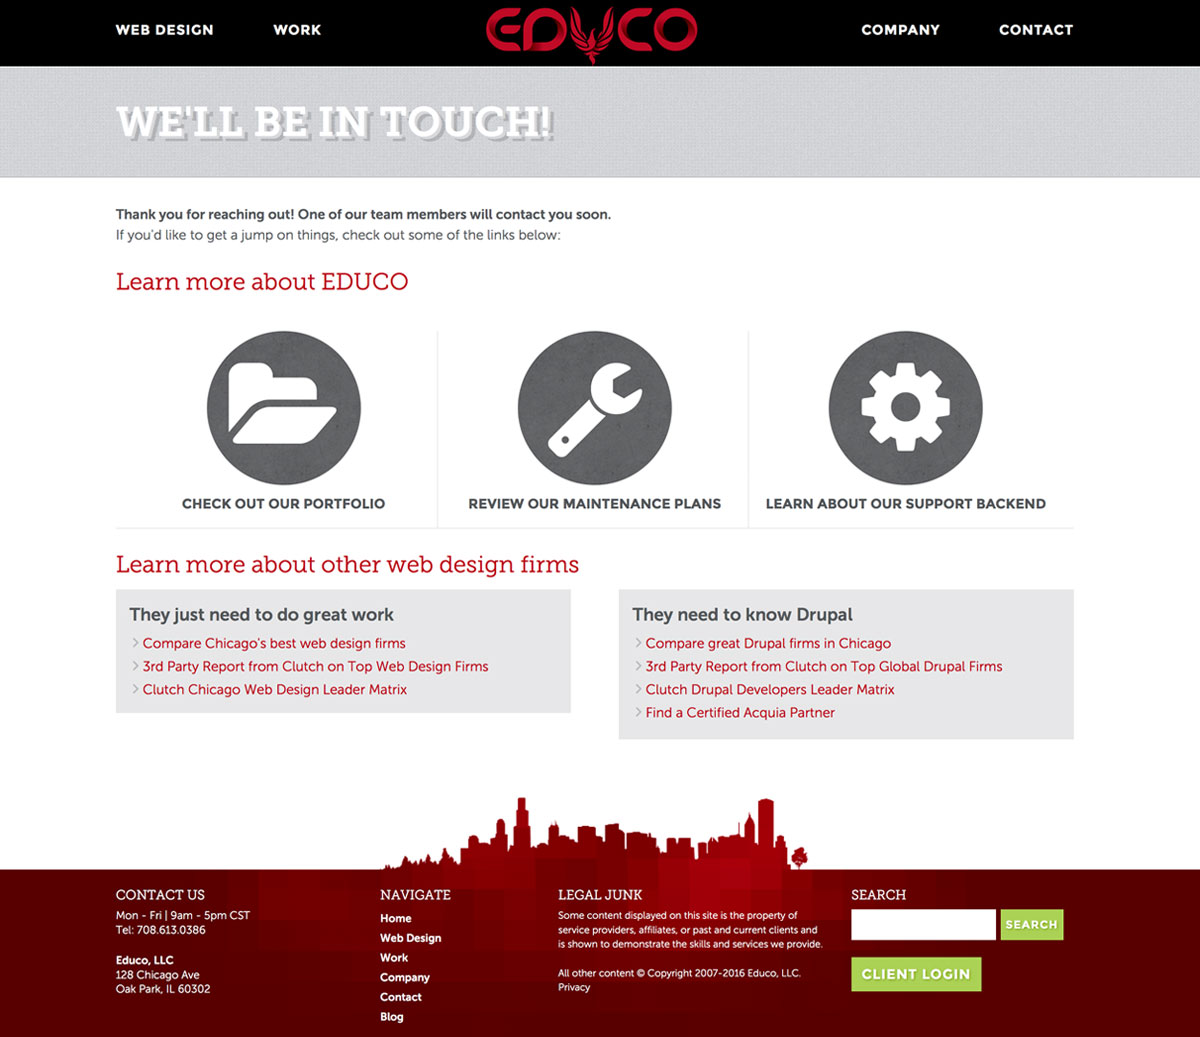 EDUCO: Best Chicago Web Design Firm with a Well Designed Lead Generation Contact Thank You Page